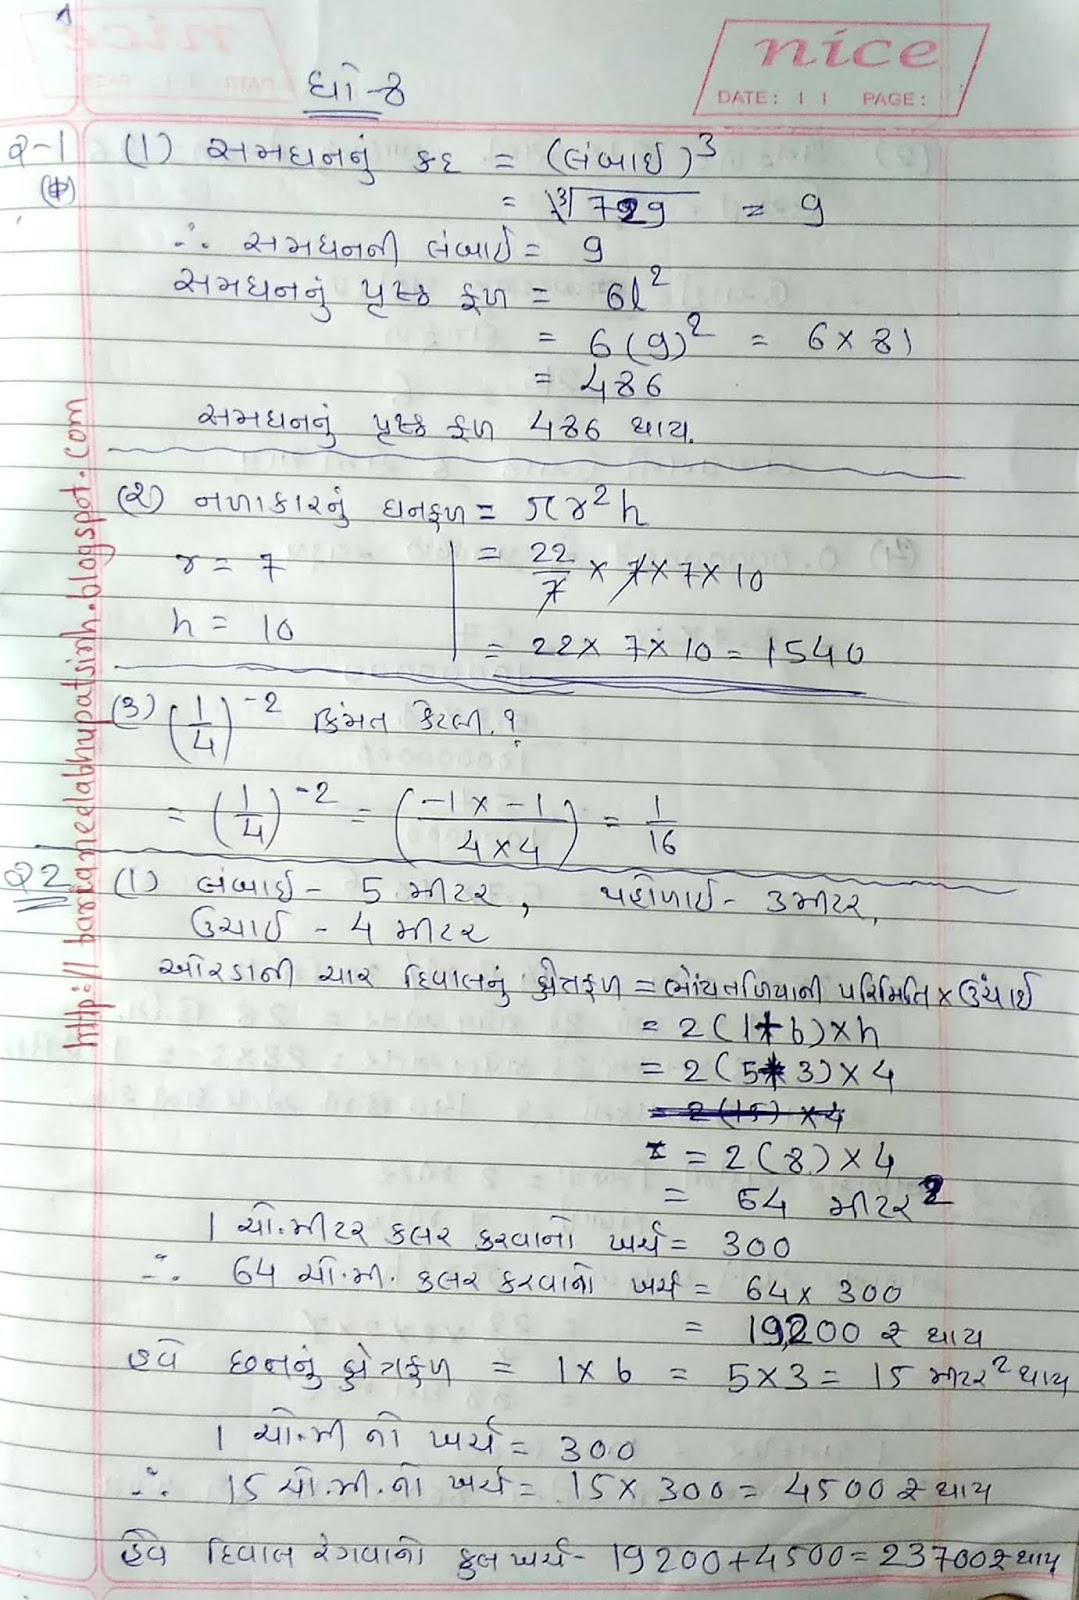 Parth way to education: STD 8 Maths paper solution date 23 Feb 2019